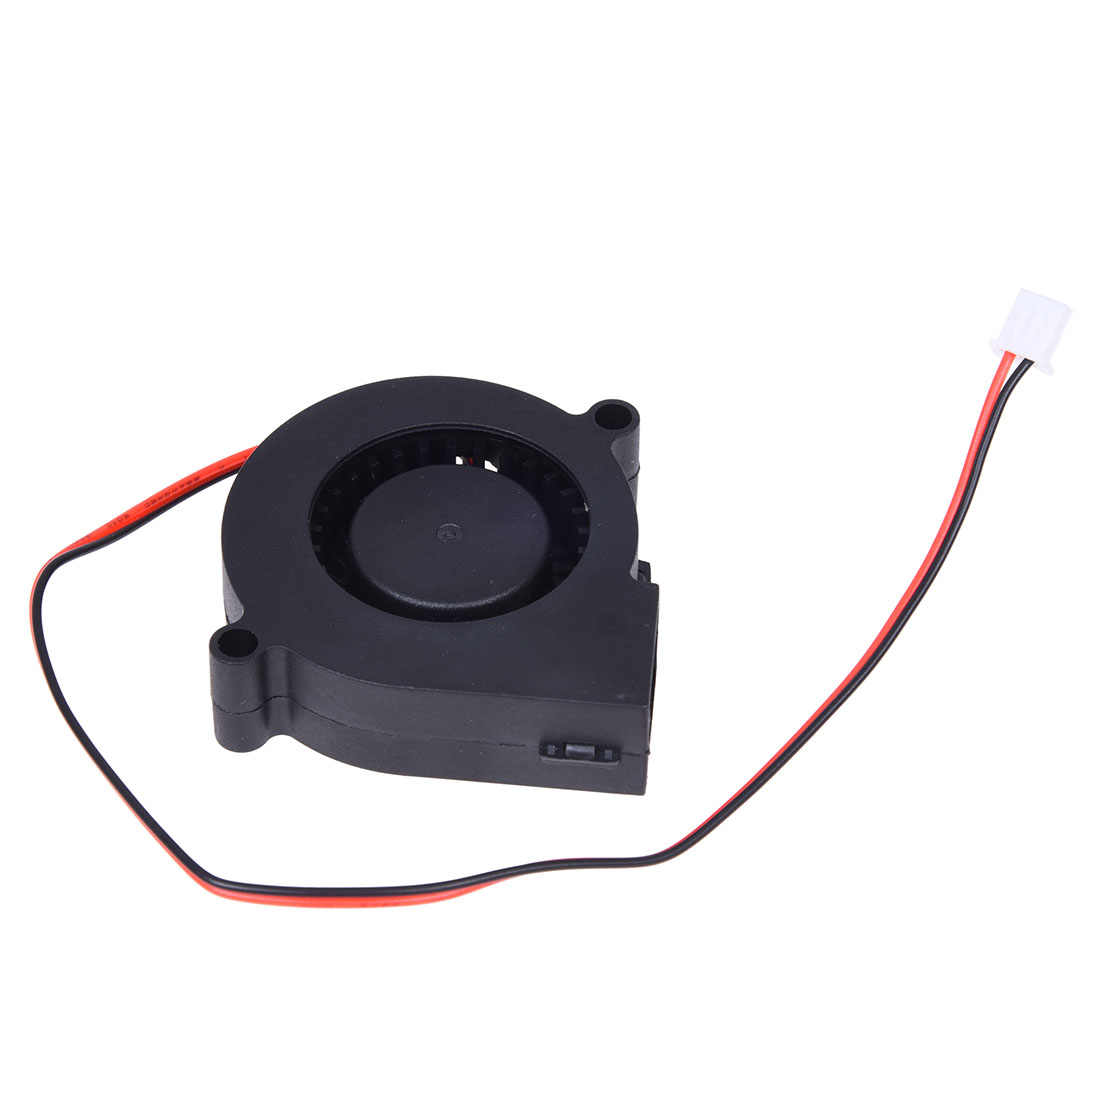 2 Pin Connector Brushless DC 24V 0.15A Turbo Blower Cooling Fan free shipping emacro bi sonic sp802524hl 03 c1 dc 24v 0 25a 2 wire 2 pin connector 100mm 80x80x25mm server square cooling fan